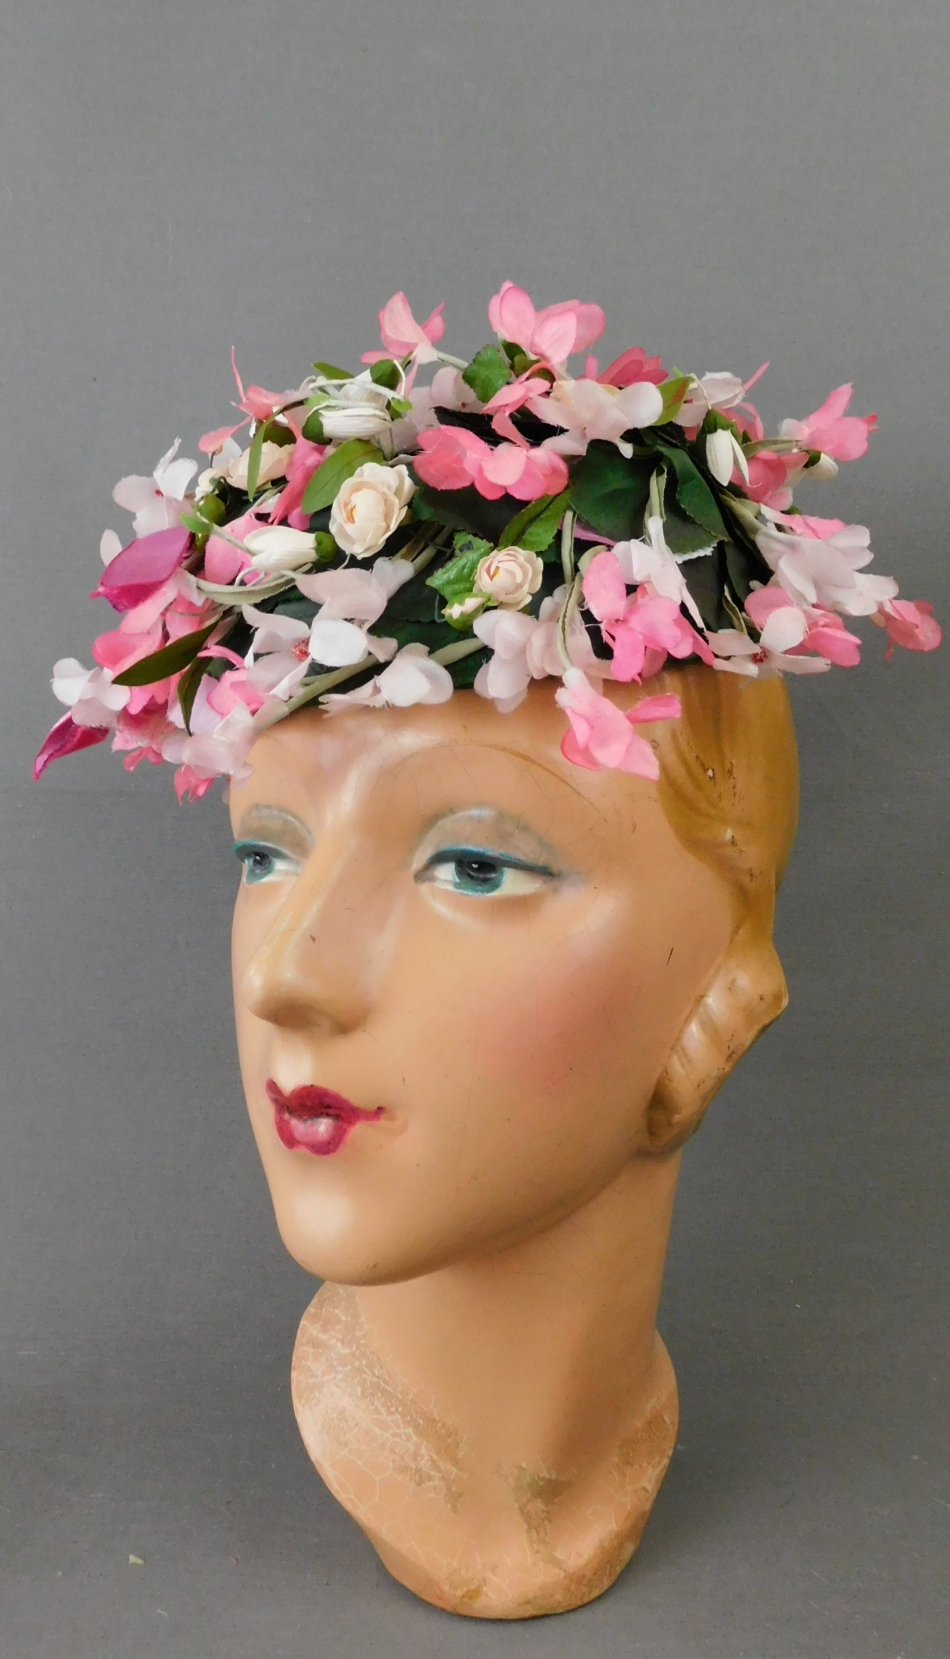 Vintage Pink Floral Topper Hat 1950s Pillbox, Green Leaves, Worth of Boston